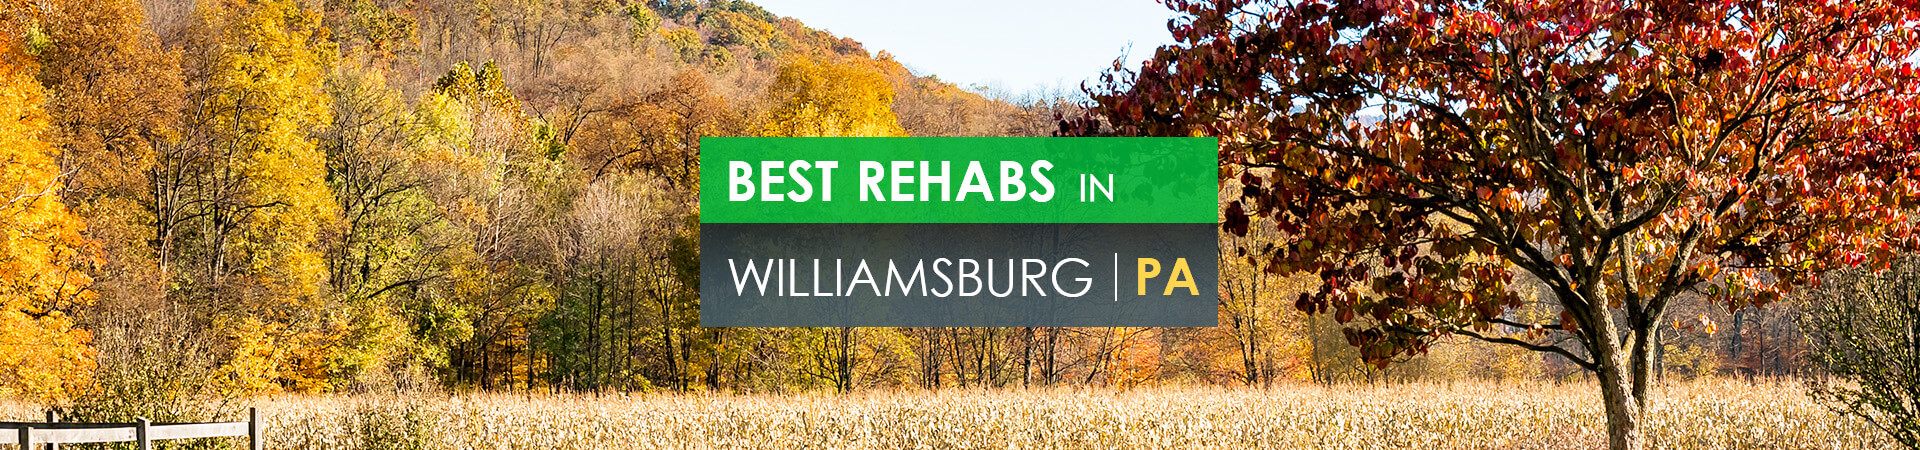 Best rehabs in Williamsburg, PA